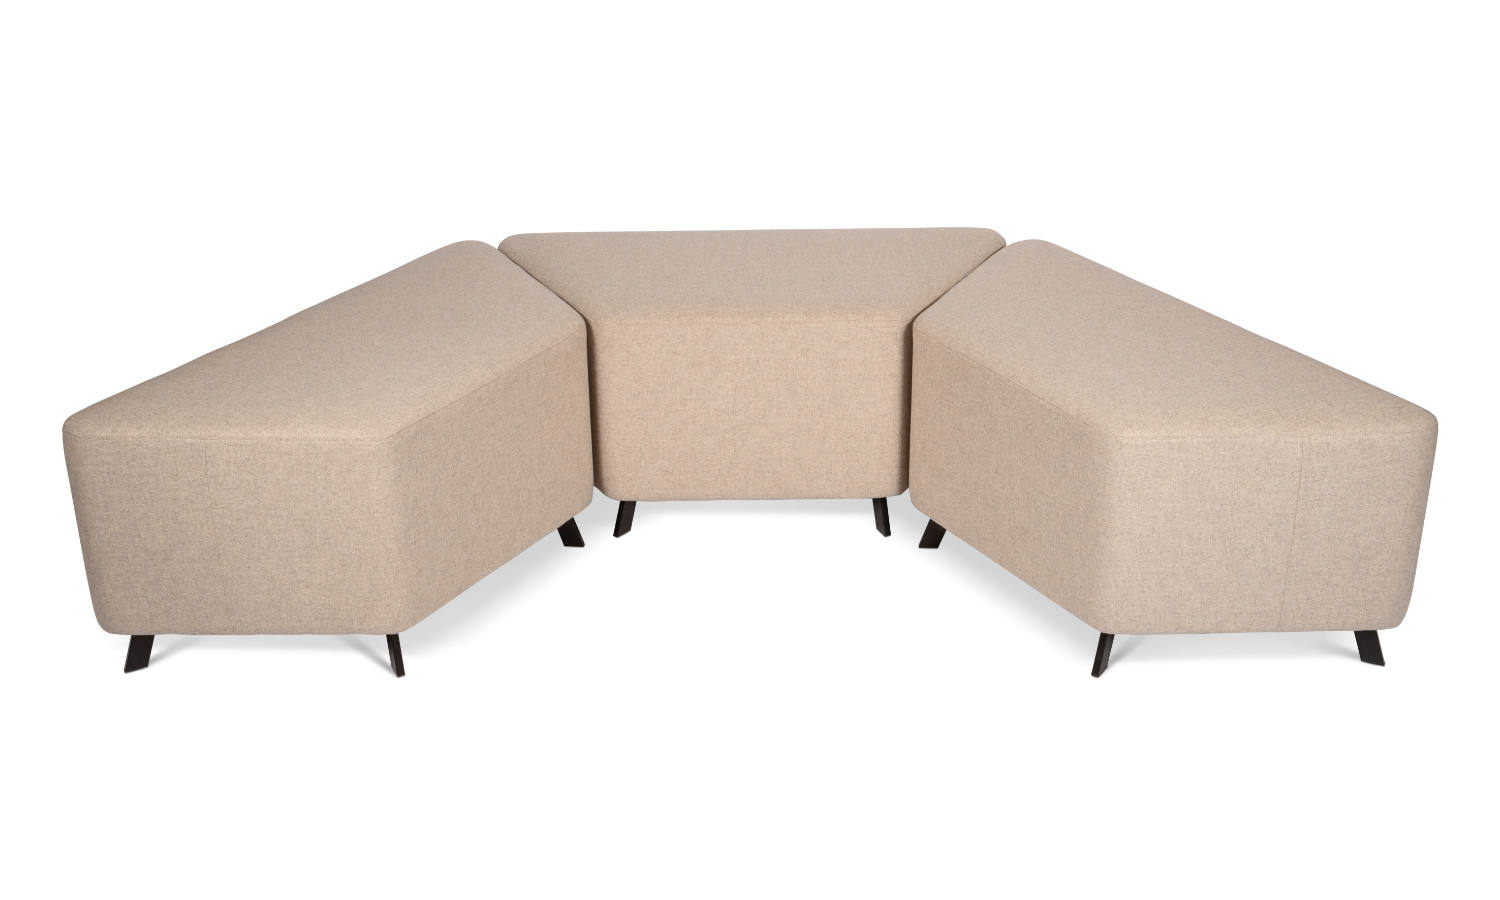 trapezium shaped ottomans grouped together